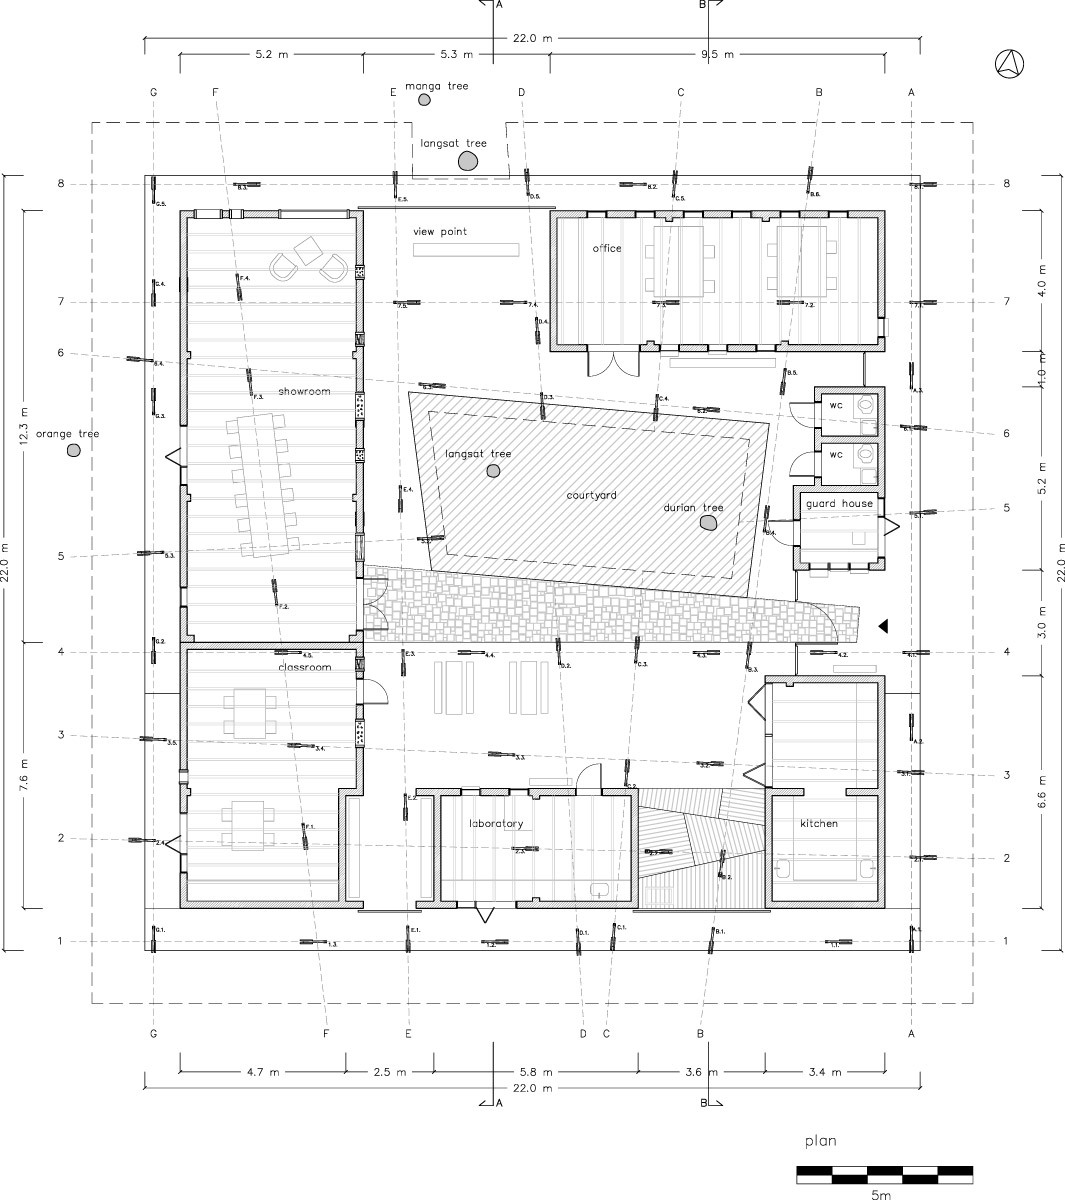 Plan (Image: TYIN tegnestue architects)